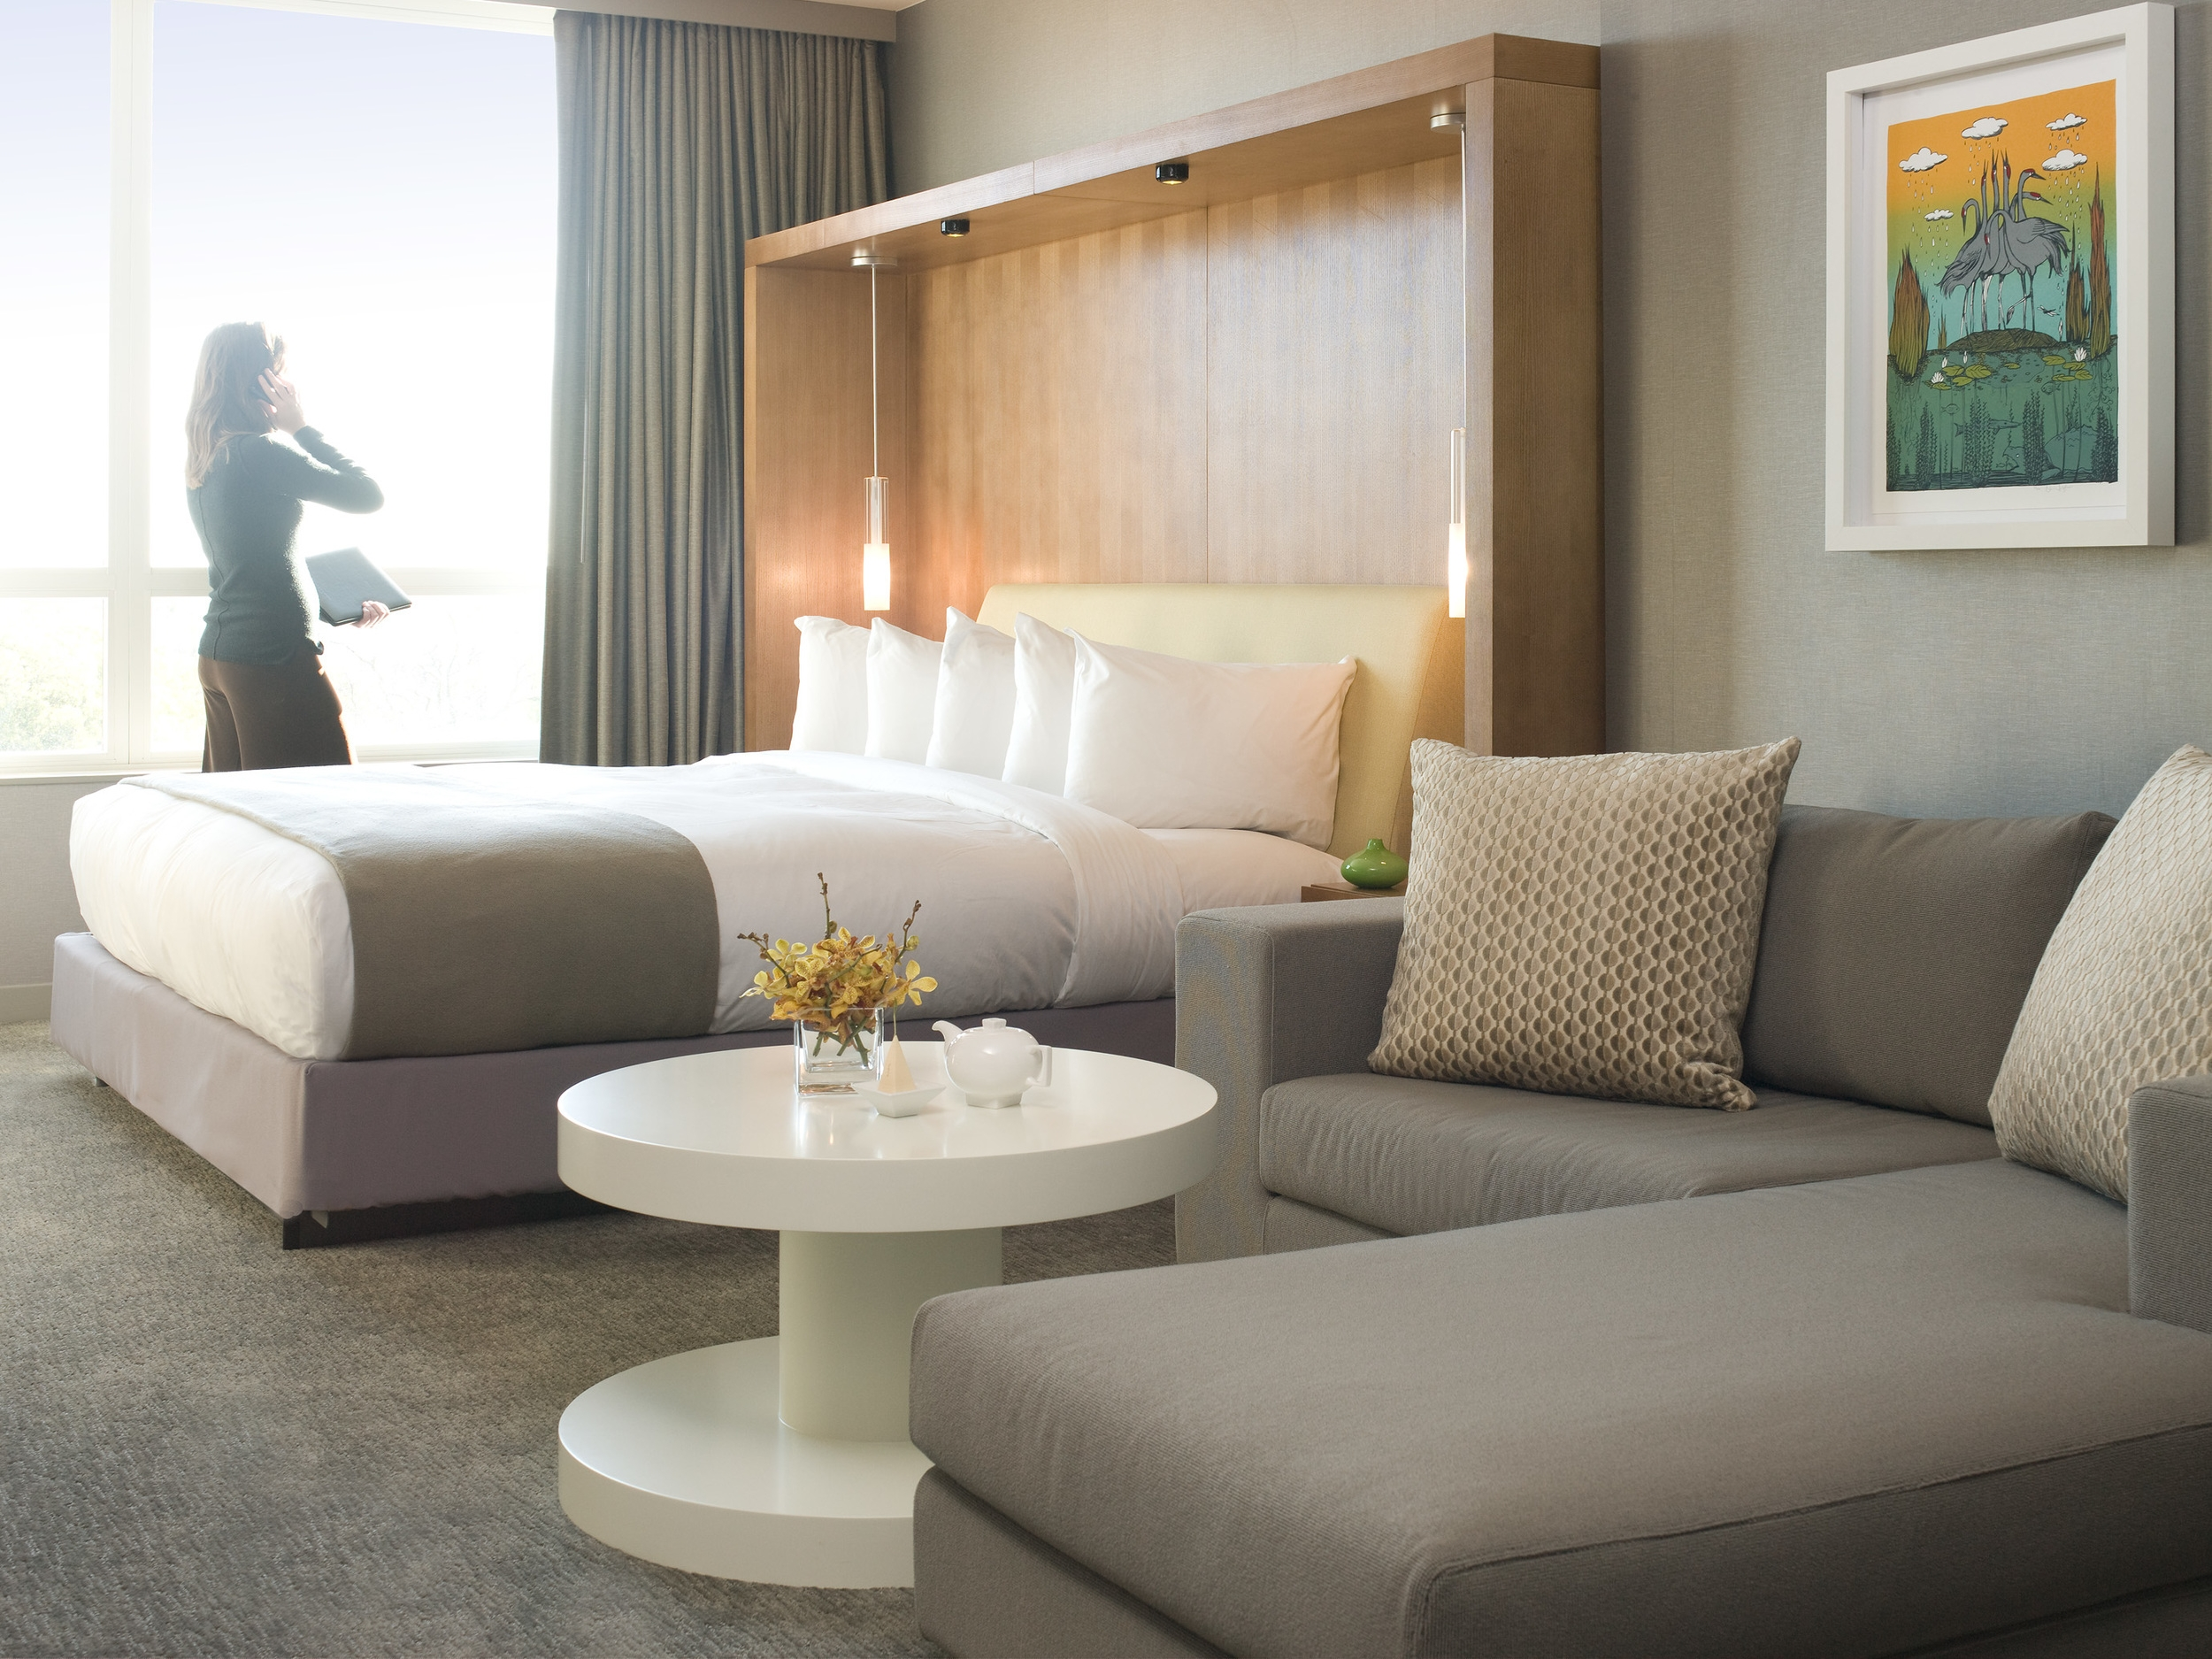 Intercontinental Chicago O'Hare Guestroom